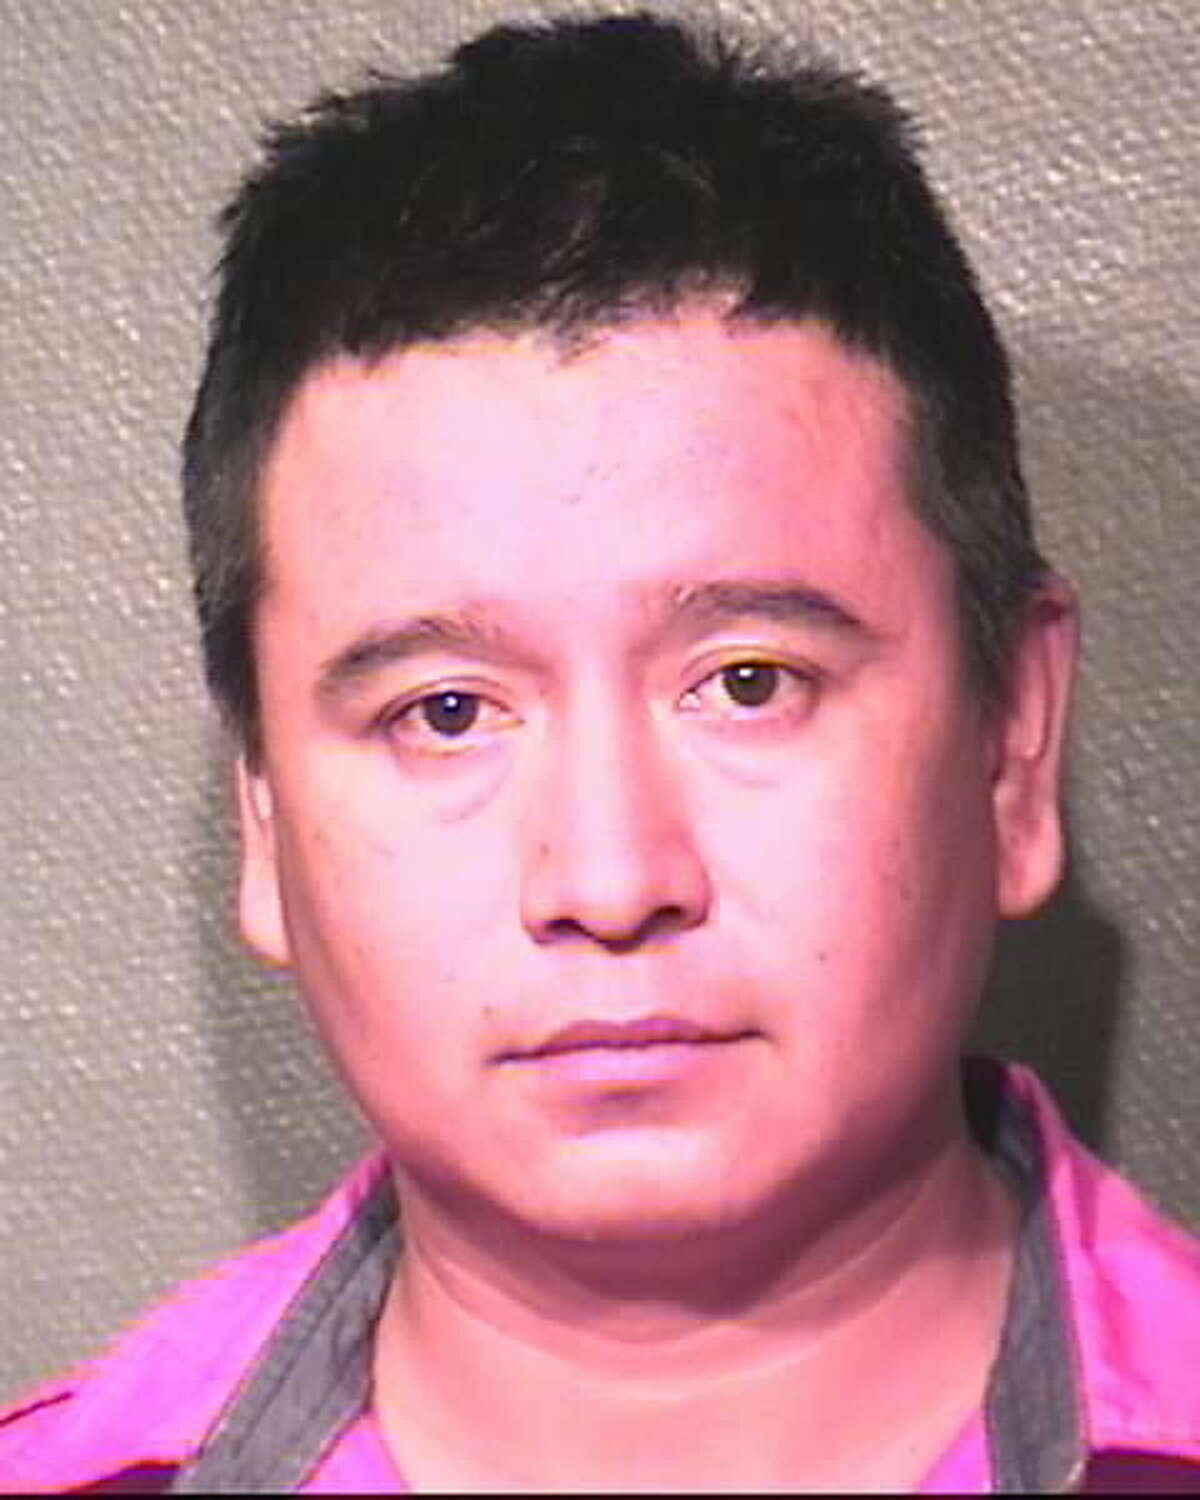 Jose Alfredo-Rodriguez was arrested Nov. 15 , 2015 and charged with felony DWI - 3rd offense.